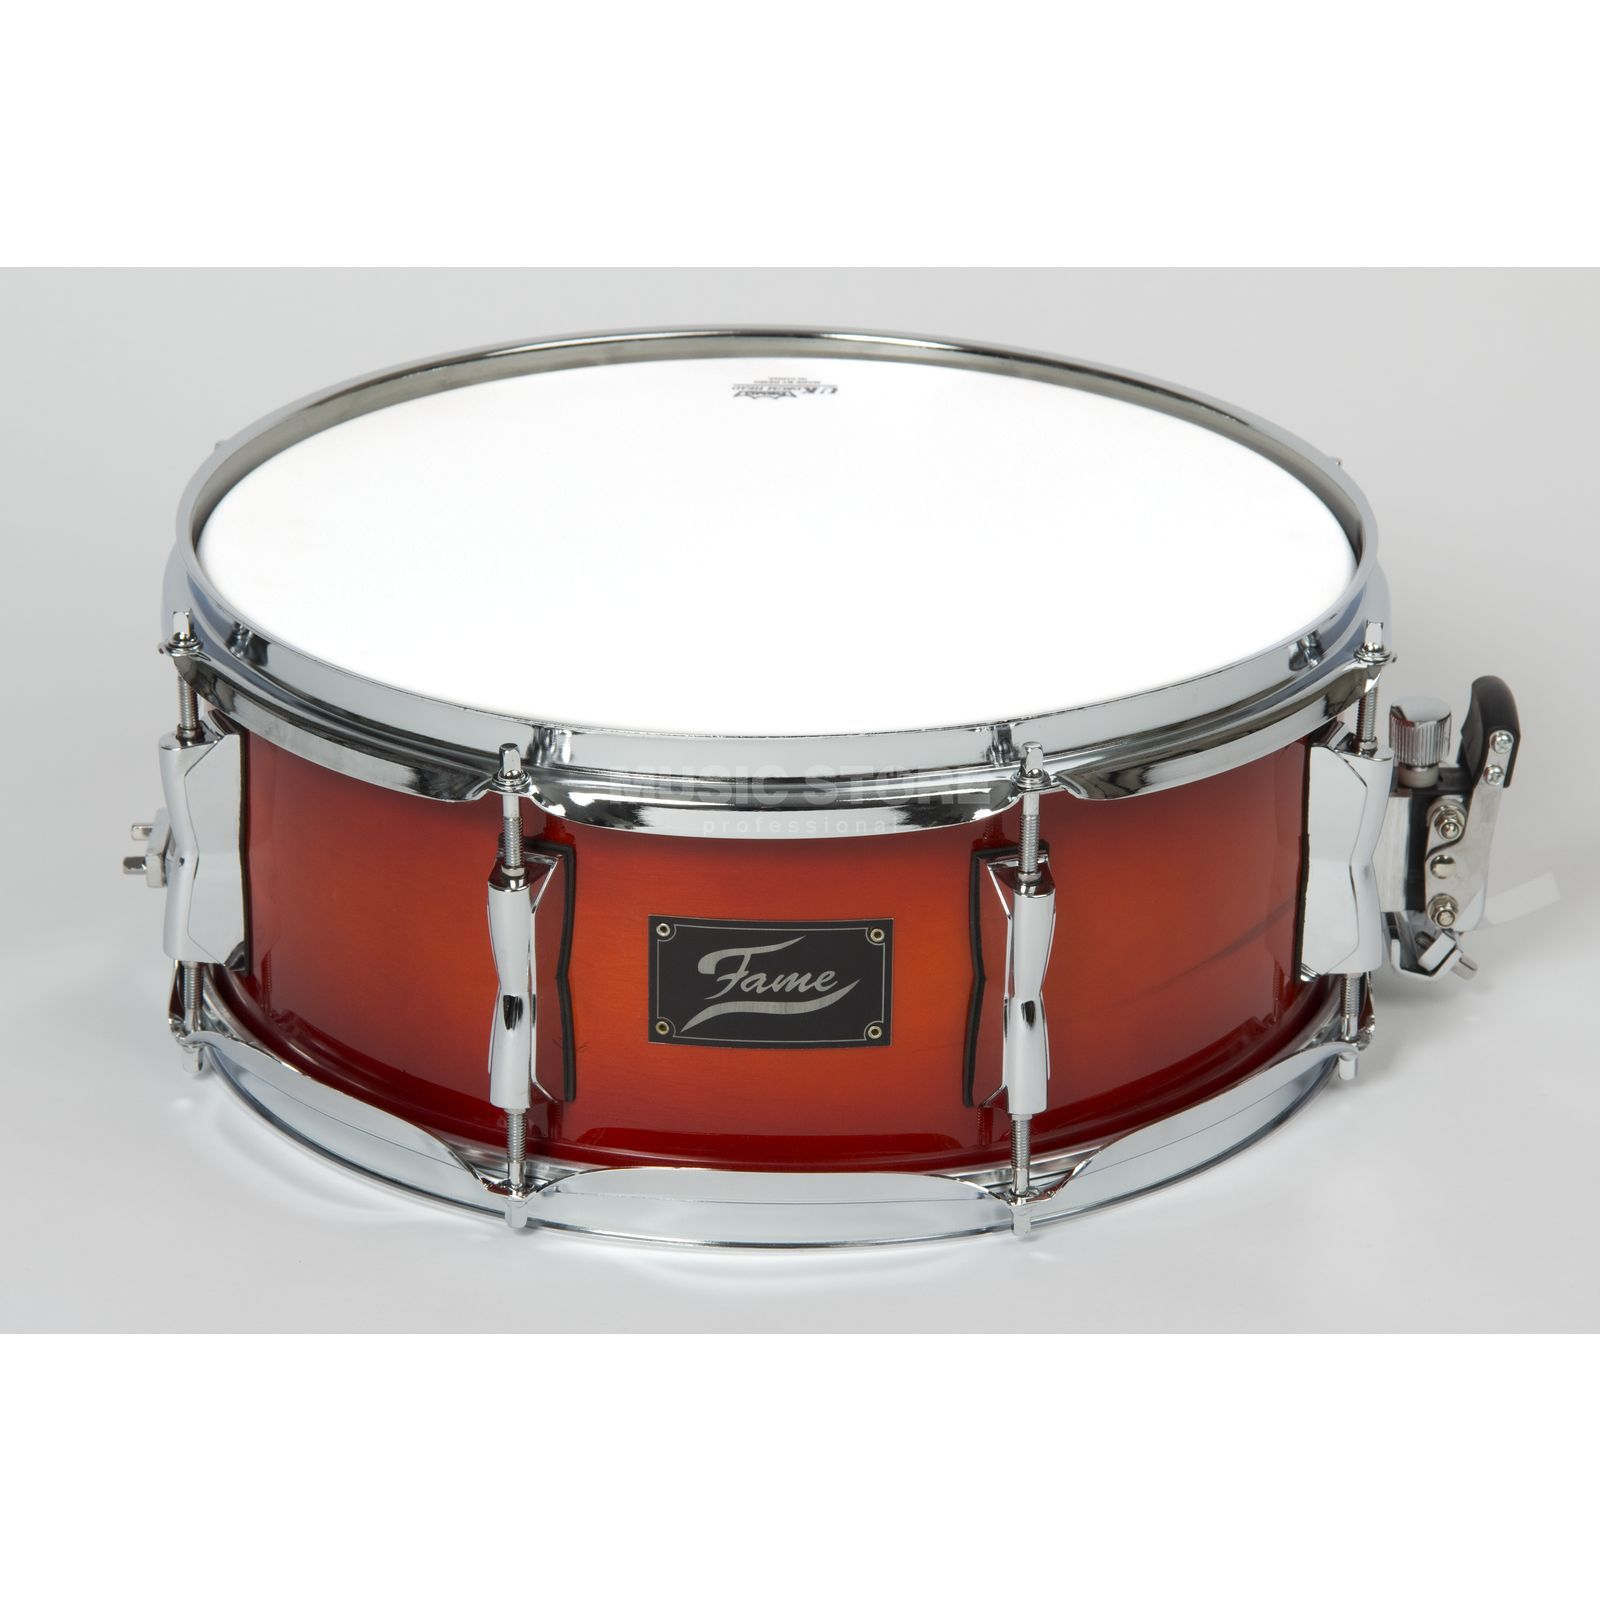 "Fame FBP Snare 14""x6,5"", #Tangerine Productafbeelding"